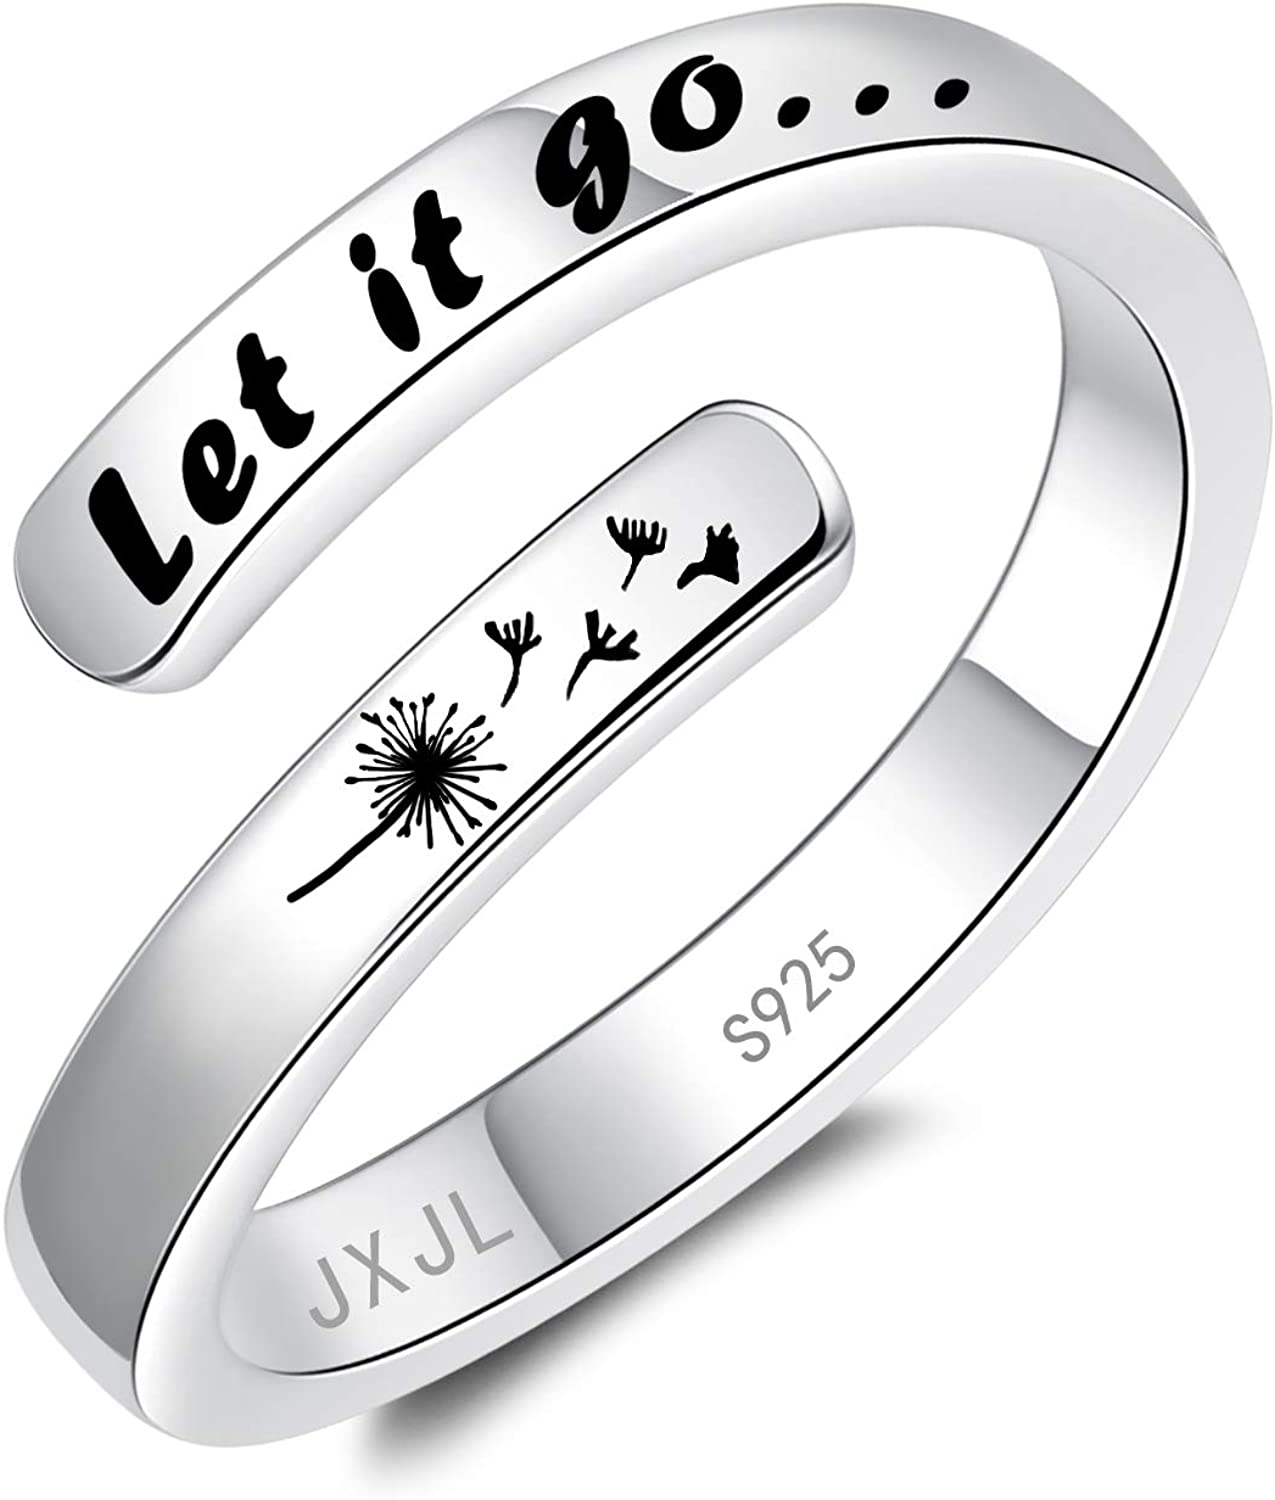 JXJL Silver Adjustable Ring I Sterling Enough Challenge the lowest price 925 Mesa Mall Am Inspiration